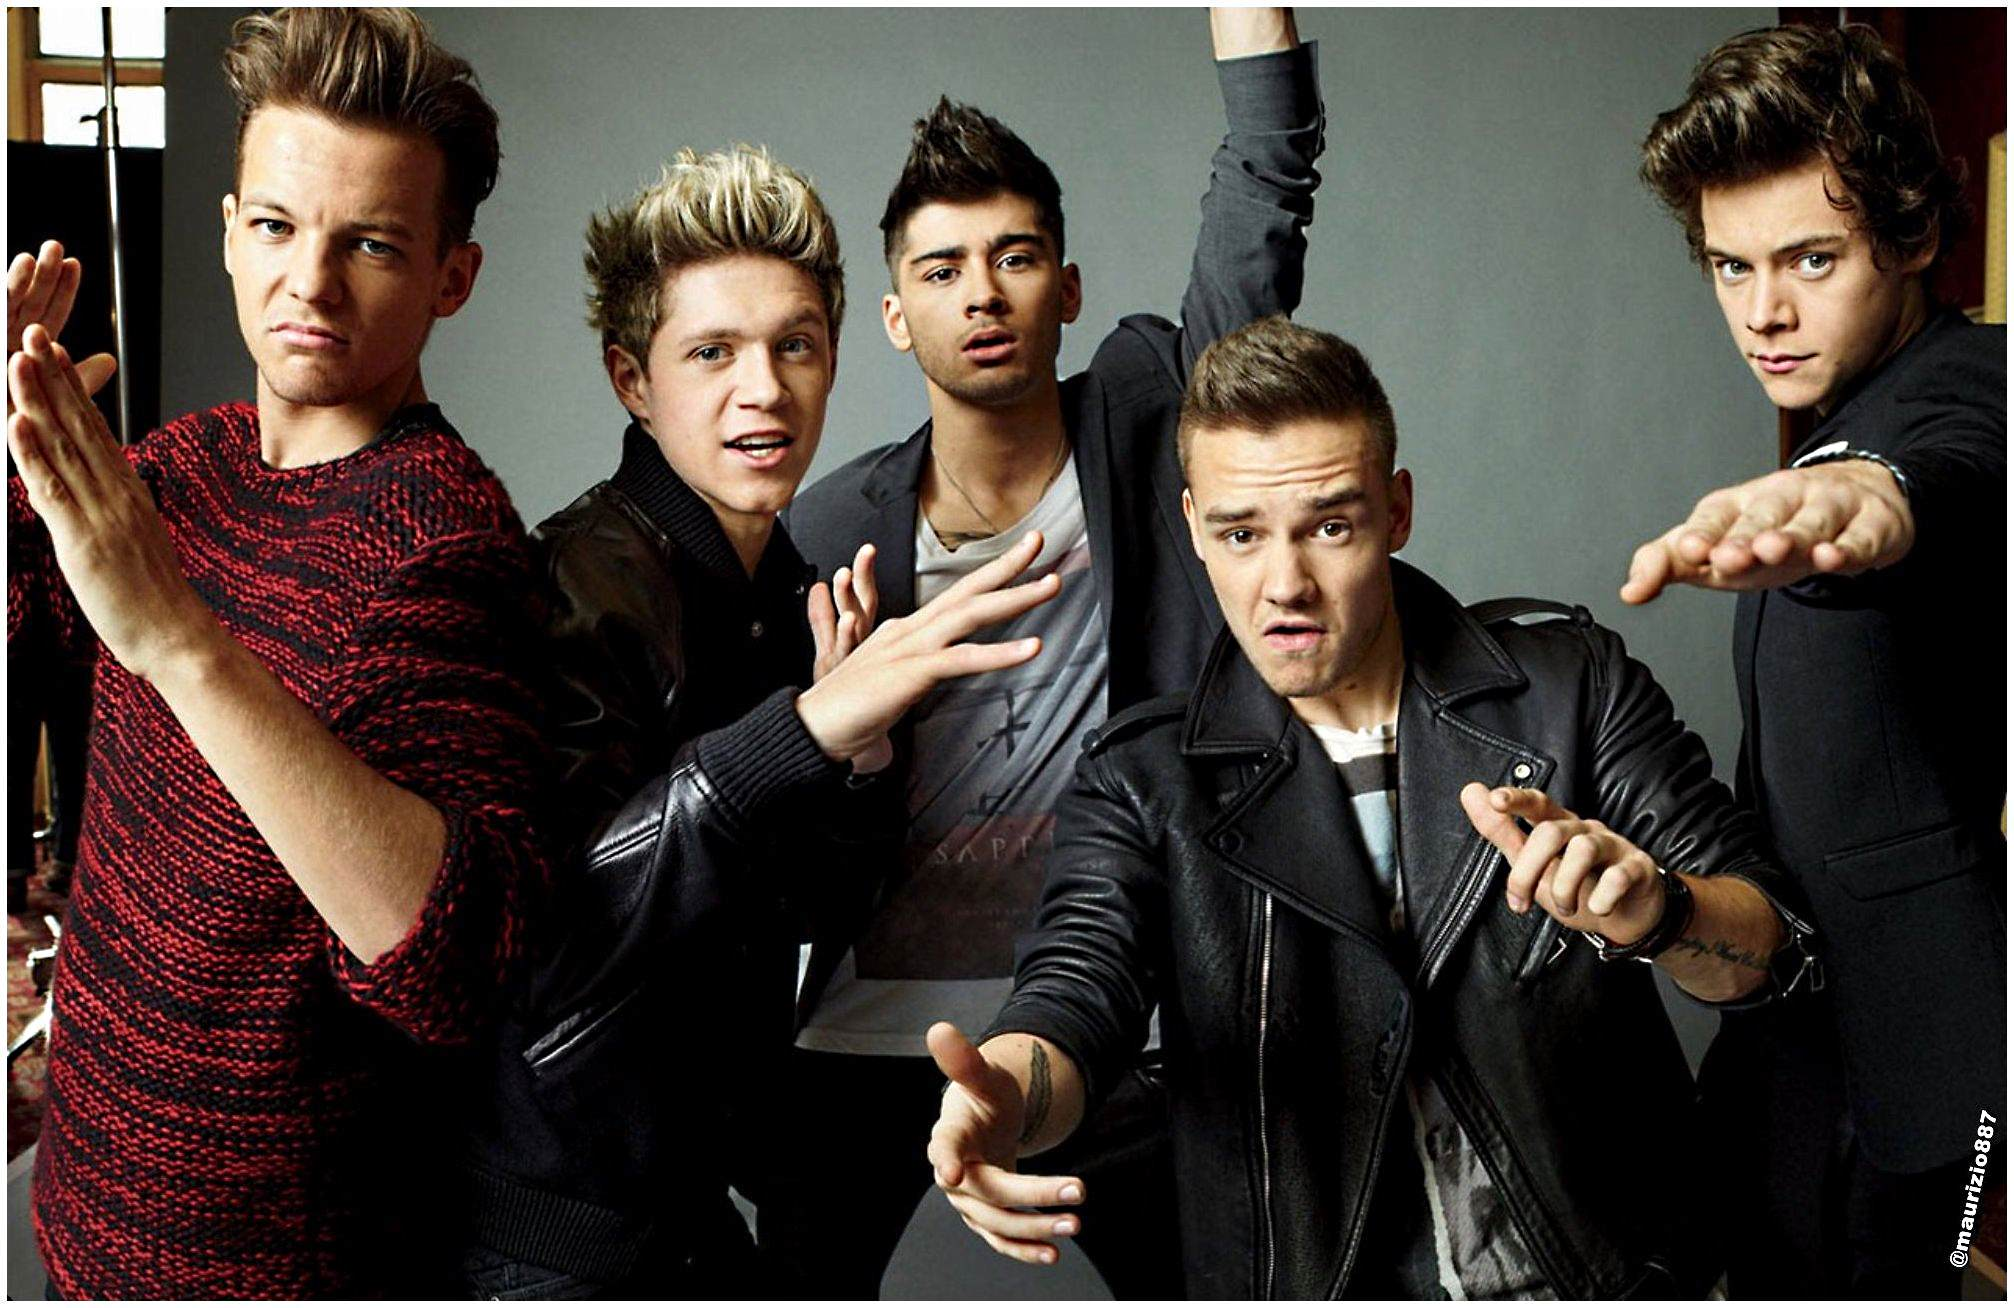 1920x1080px-Members-of-One-Direction-wallpaper-wpc5801138